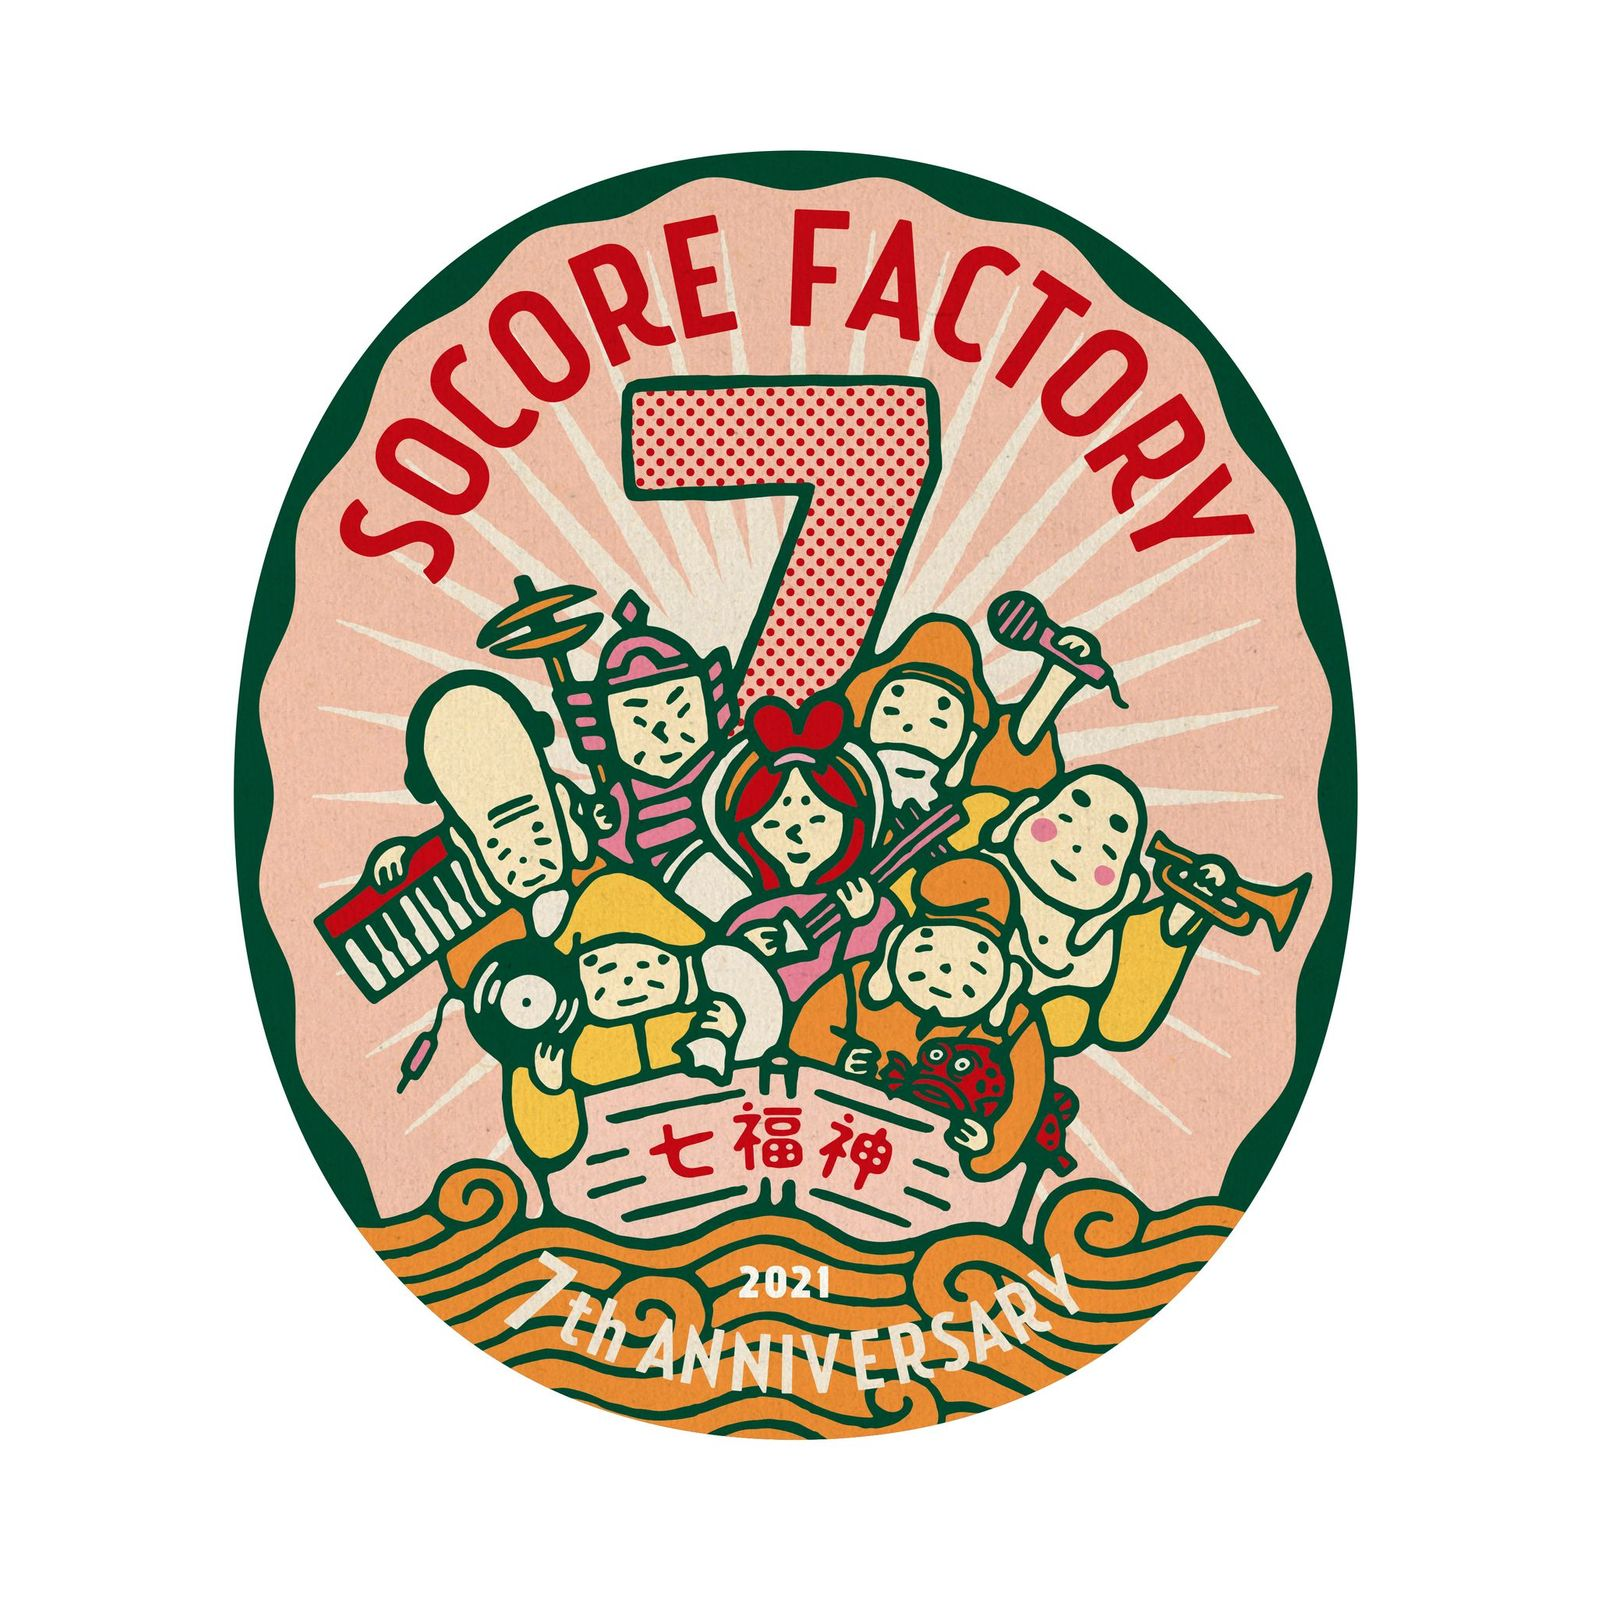 SOCORE FACTORY 7th MONTHLY EVENT